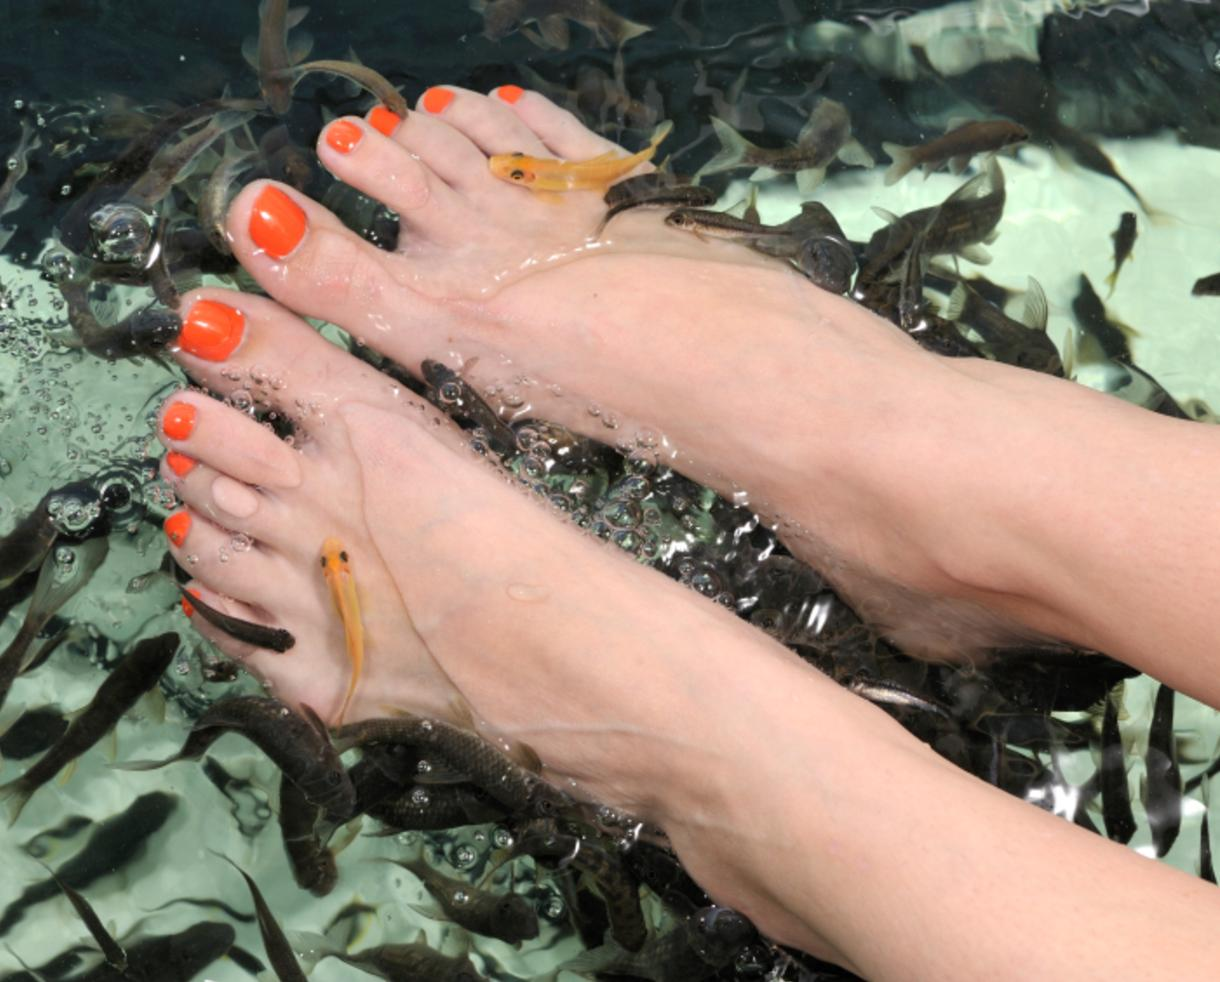 20 minute fish therapy session regular manicure and for Fish pedicure nyc